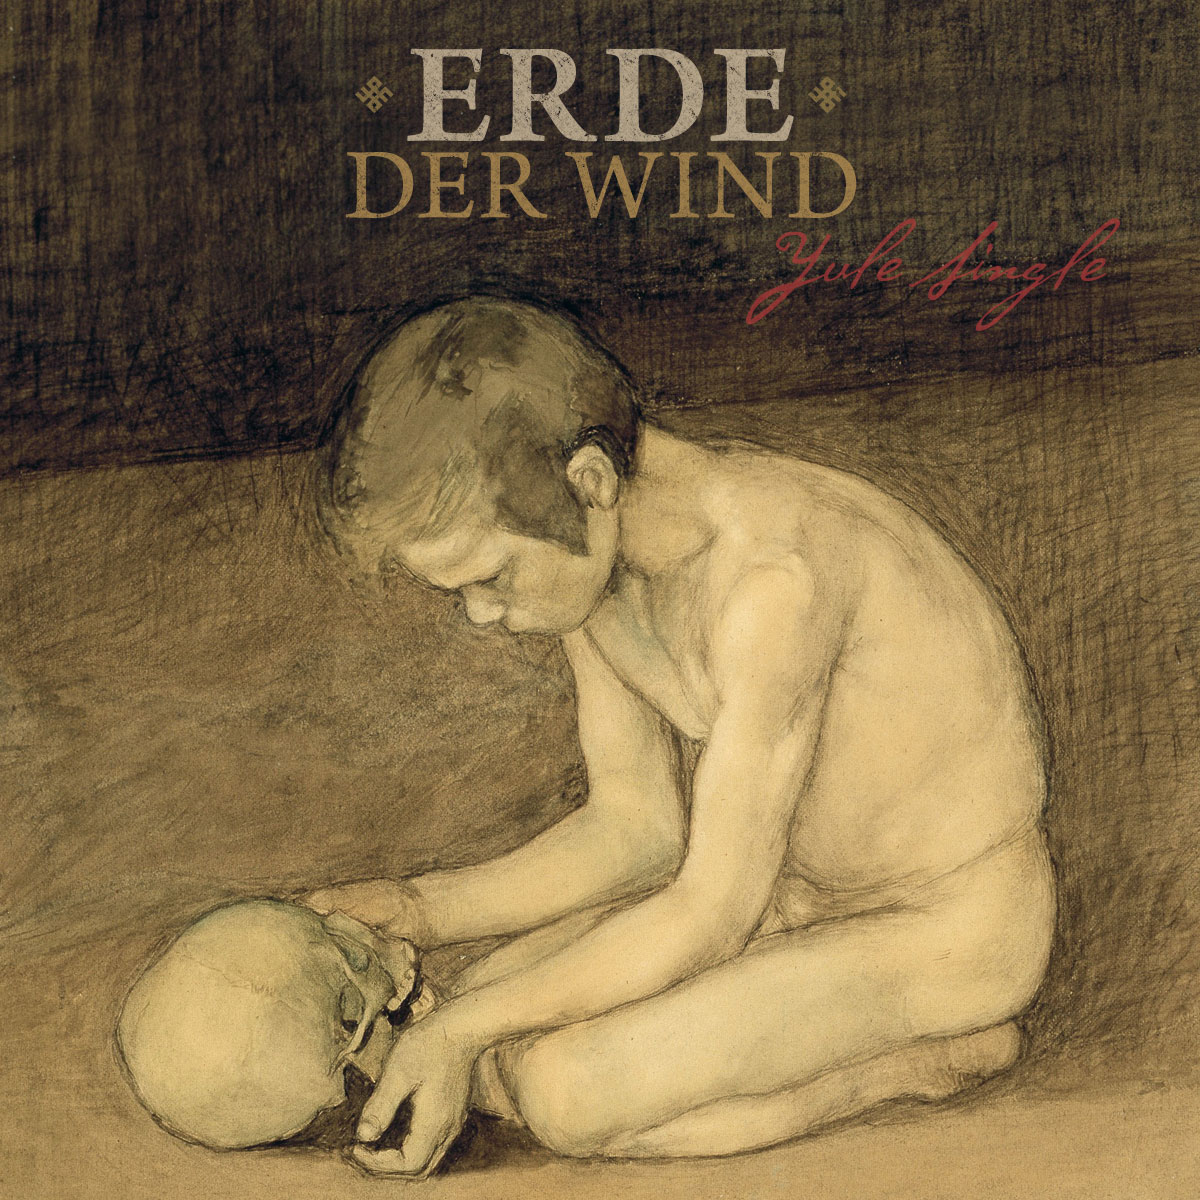 Erde der wind download listen